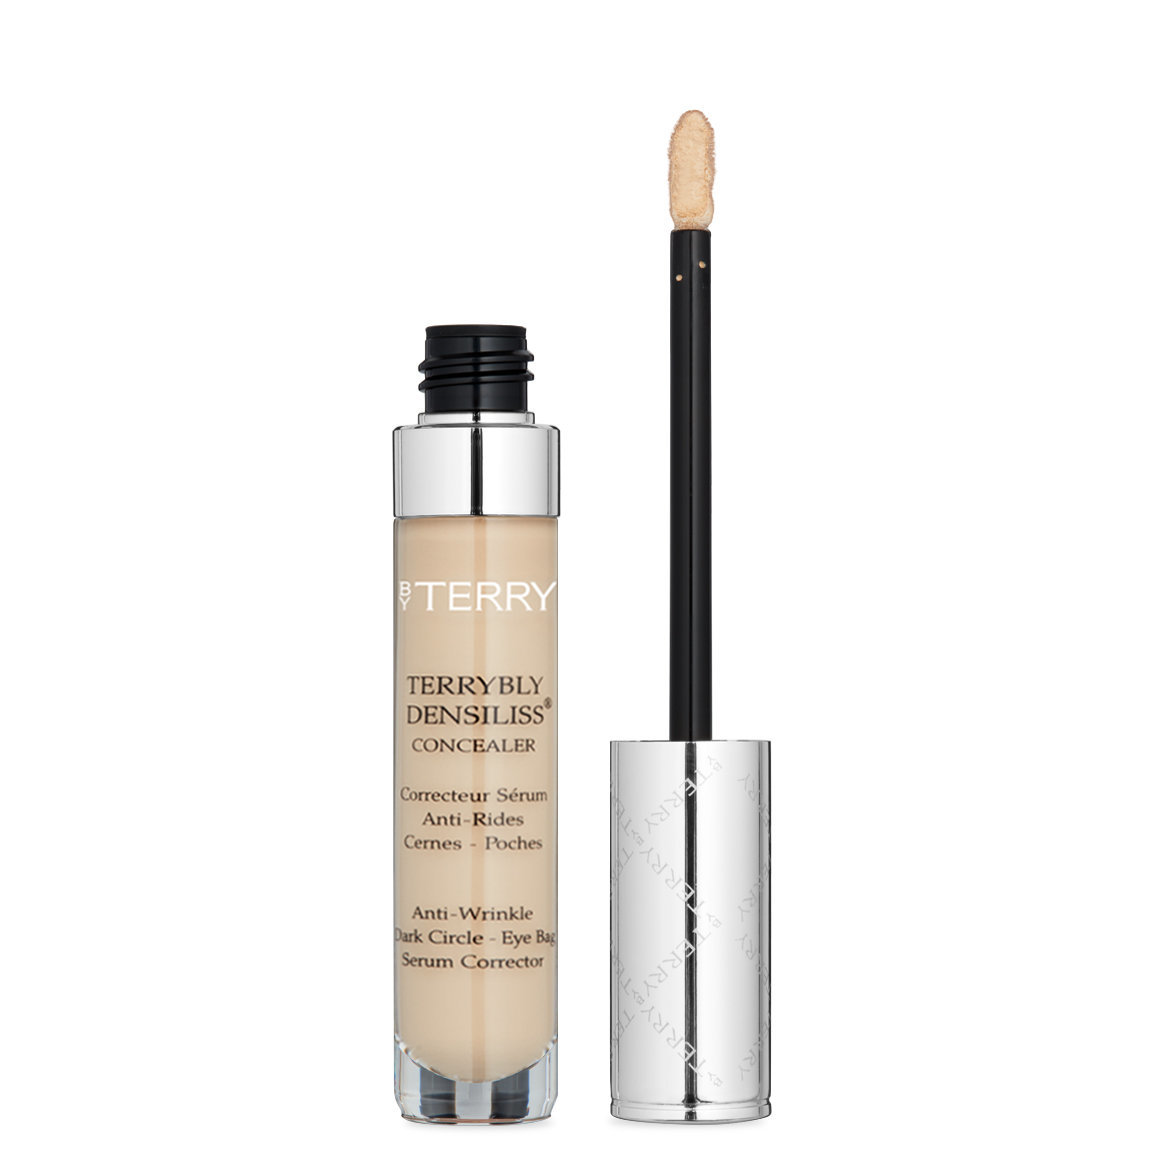 BY TERRY Terrybly Densiliss Concealer 3 Natural Beige alternative view 1.